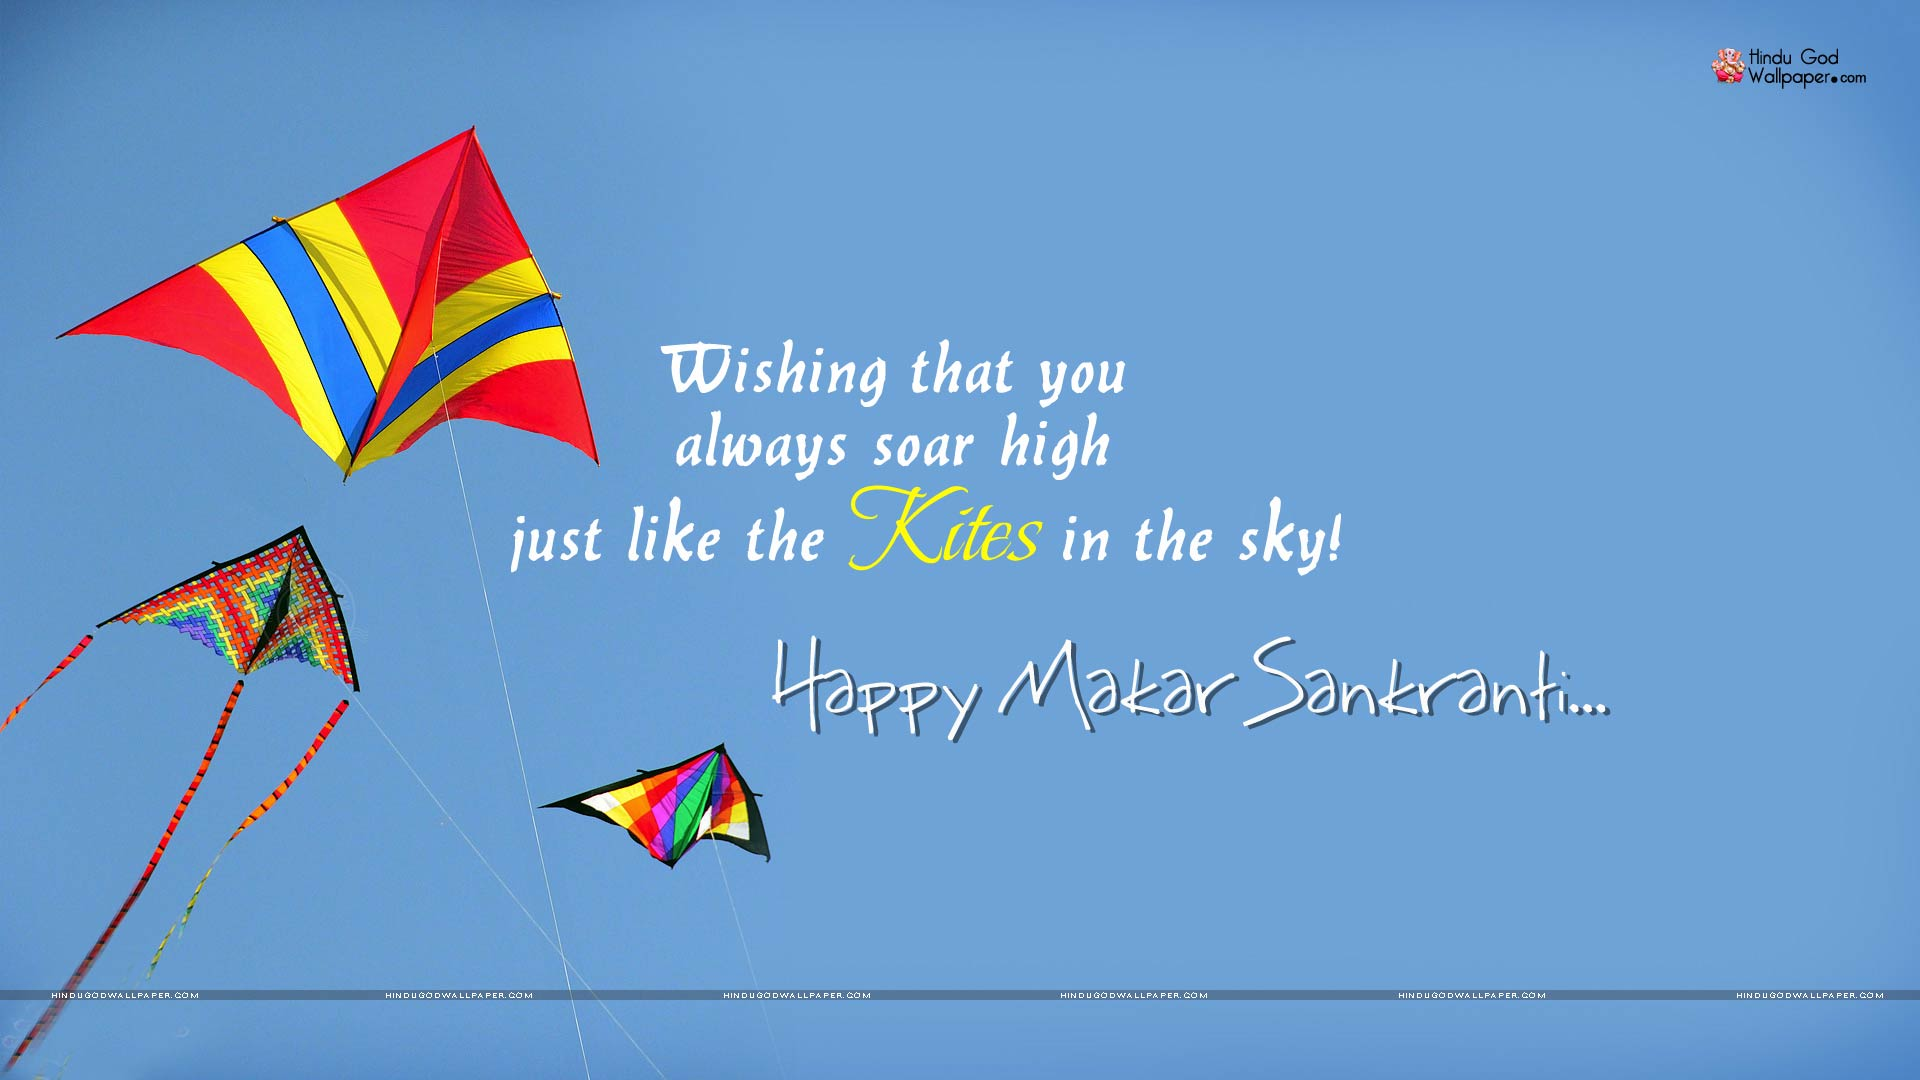 1920x1080 happy makar sankranti hd wallpaper free download happy makar sankranti hd wallpaper